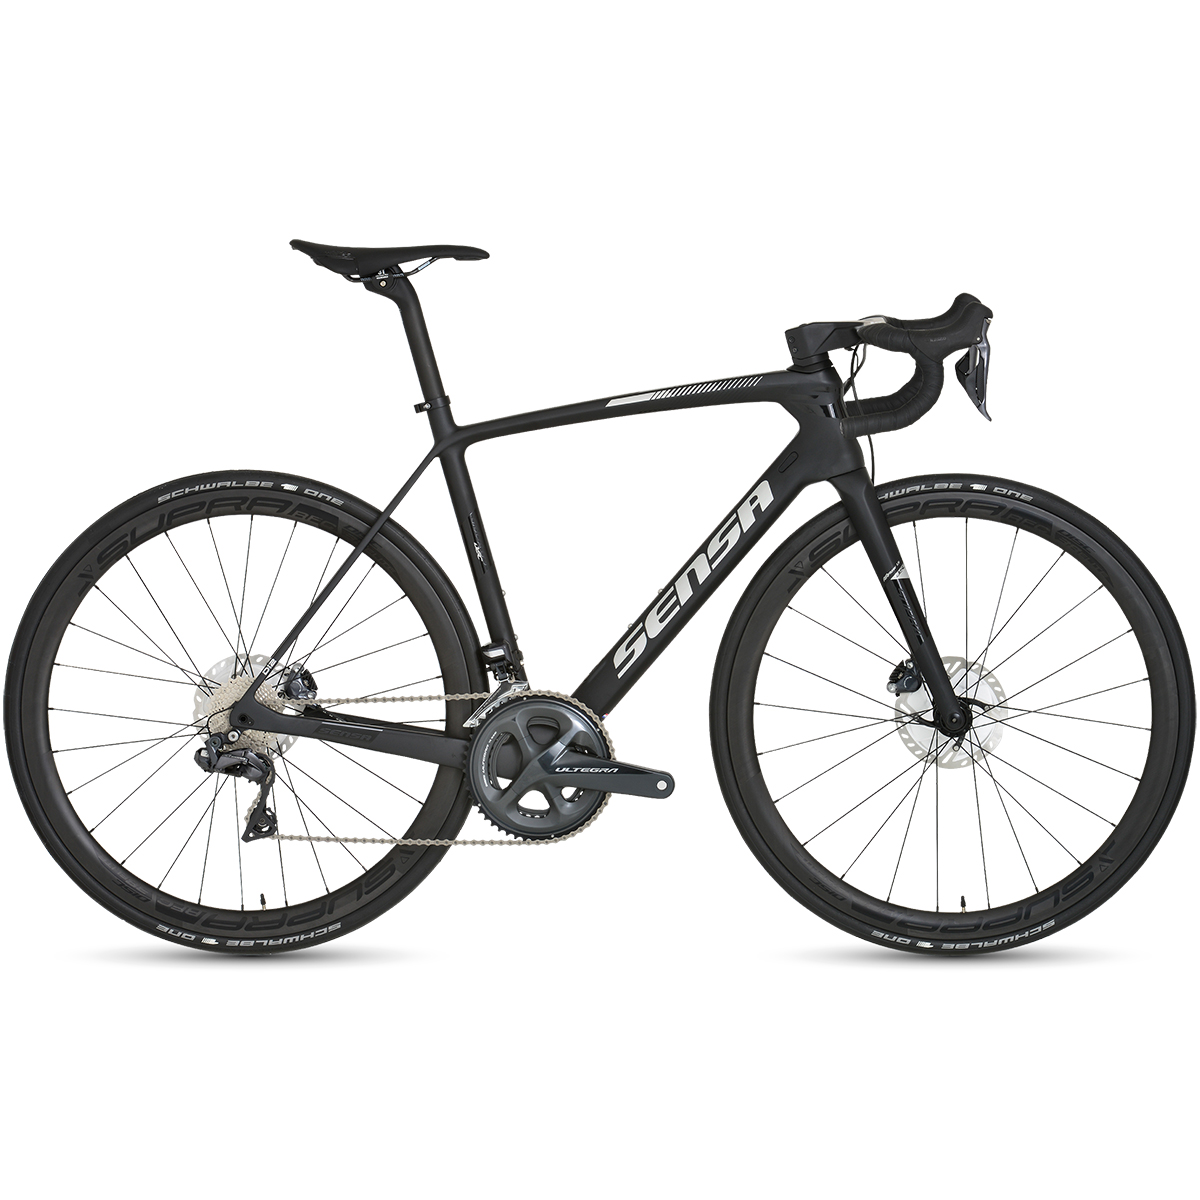 Sensa Giulia G3 Disc Stealth Ultegra Road Bike - 2019